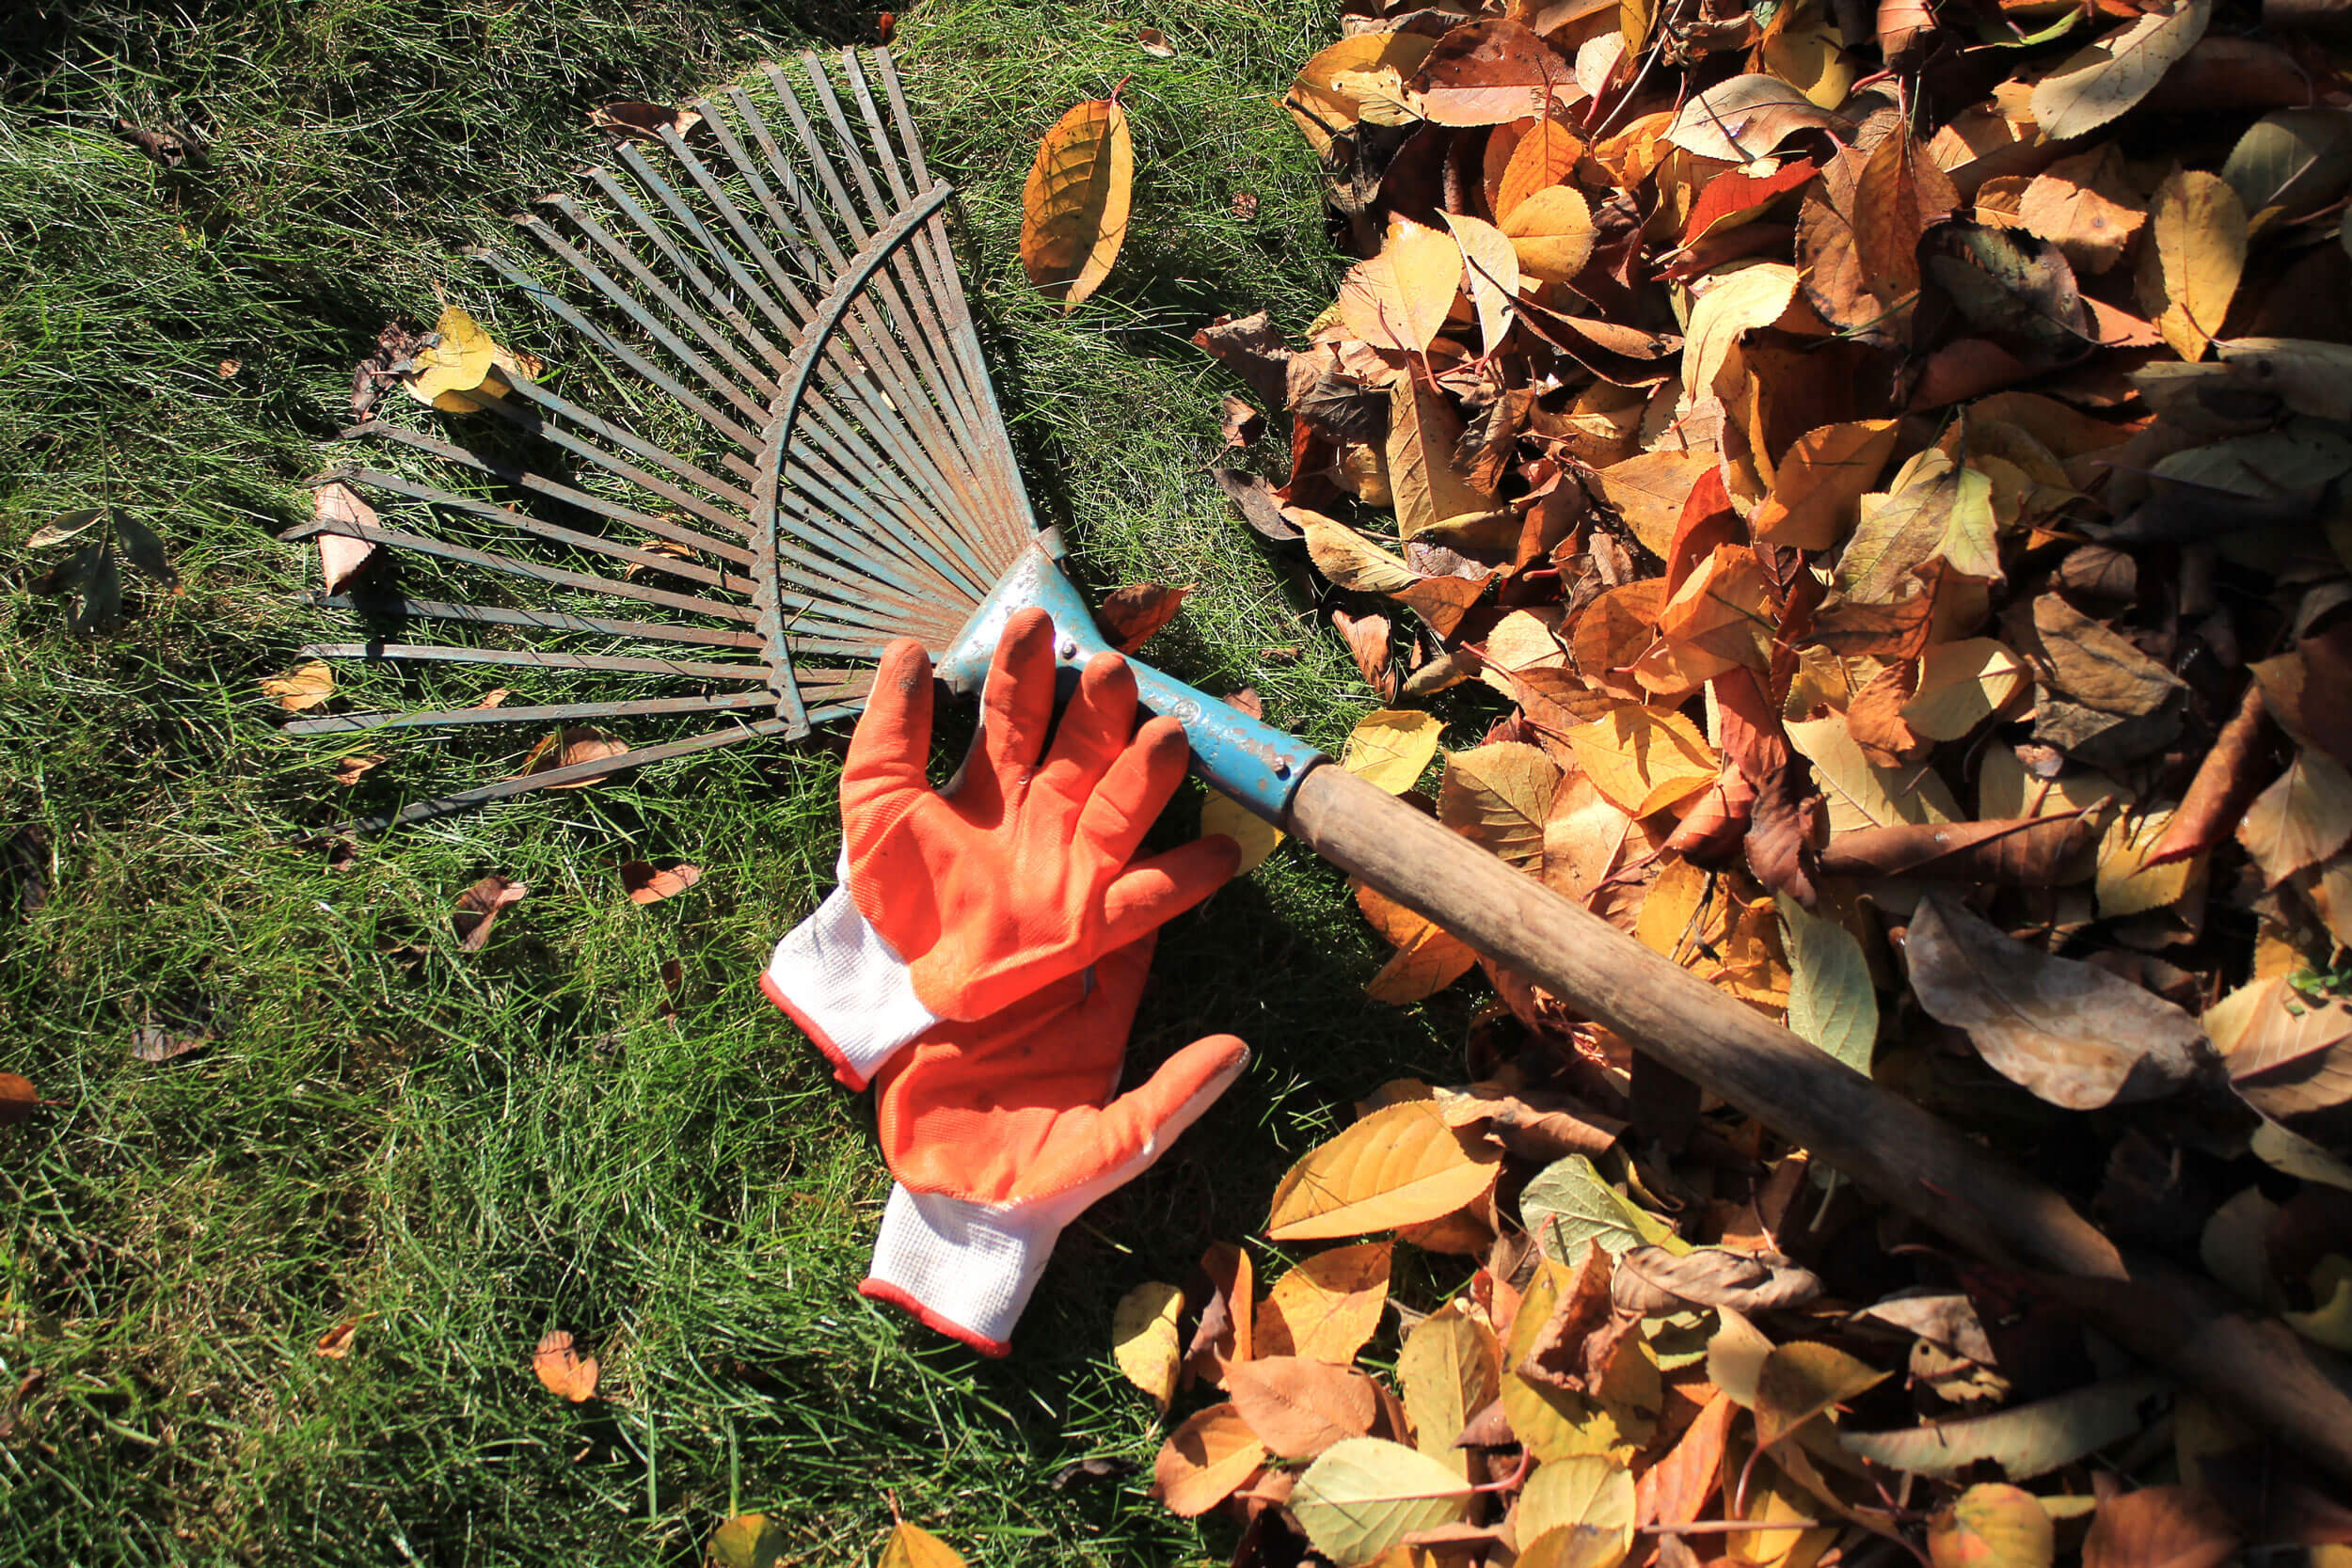 leaf rake and gloves - essential autumn lawn care tools